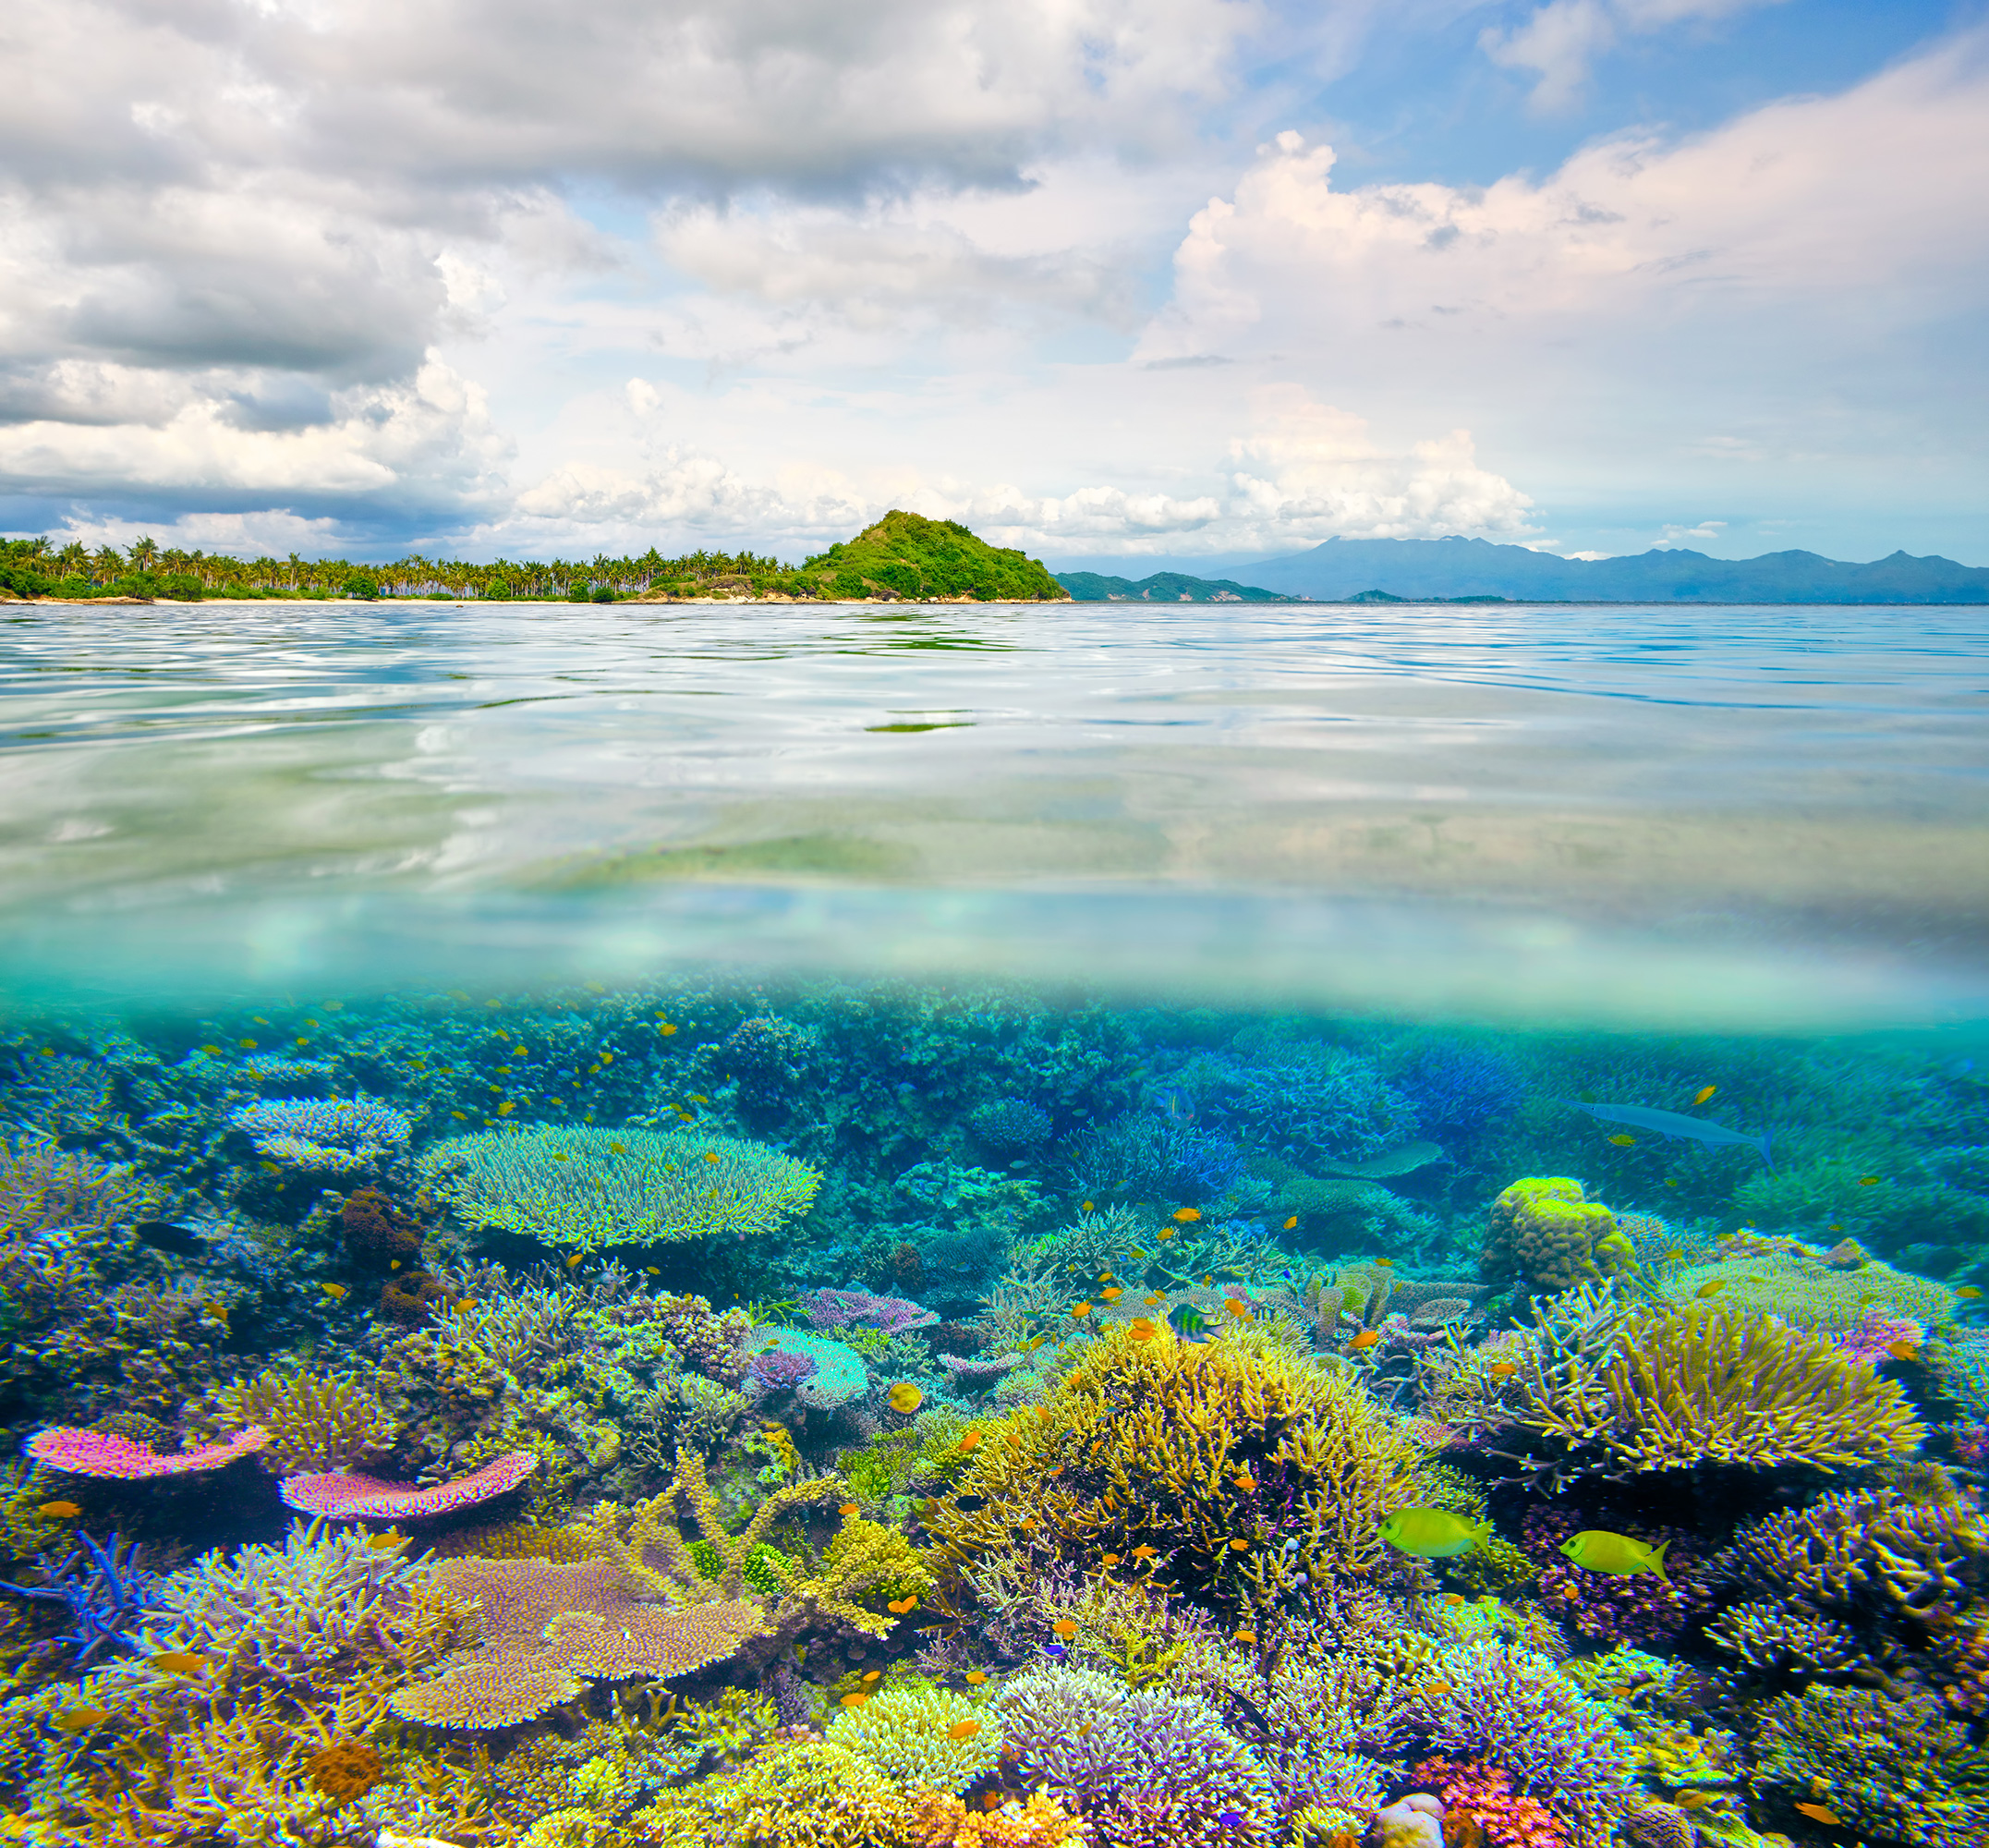 Scientists Have Discovered Pockets of Coral Reefs Surviving in Warmer Waters